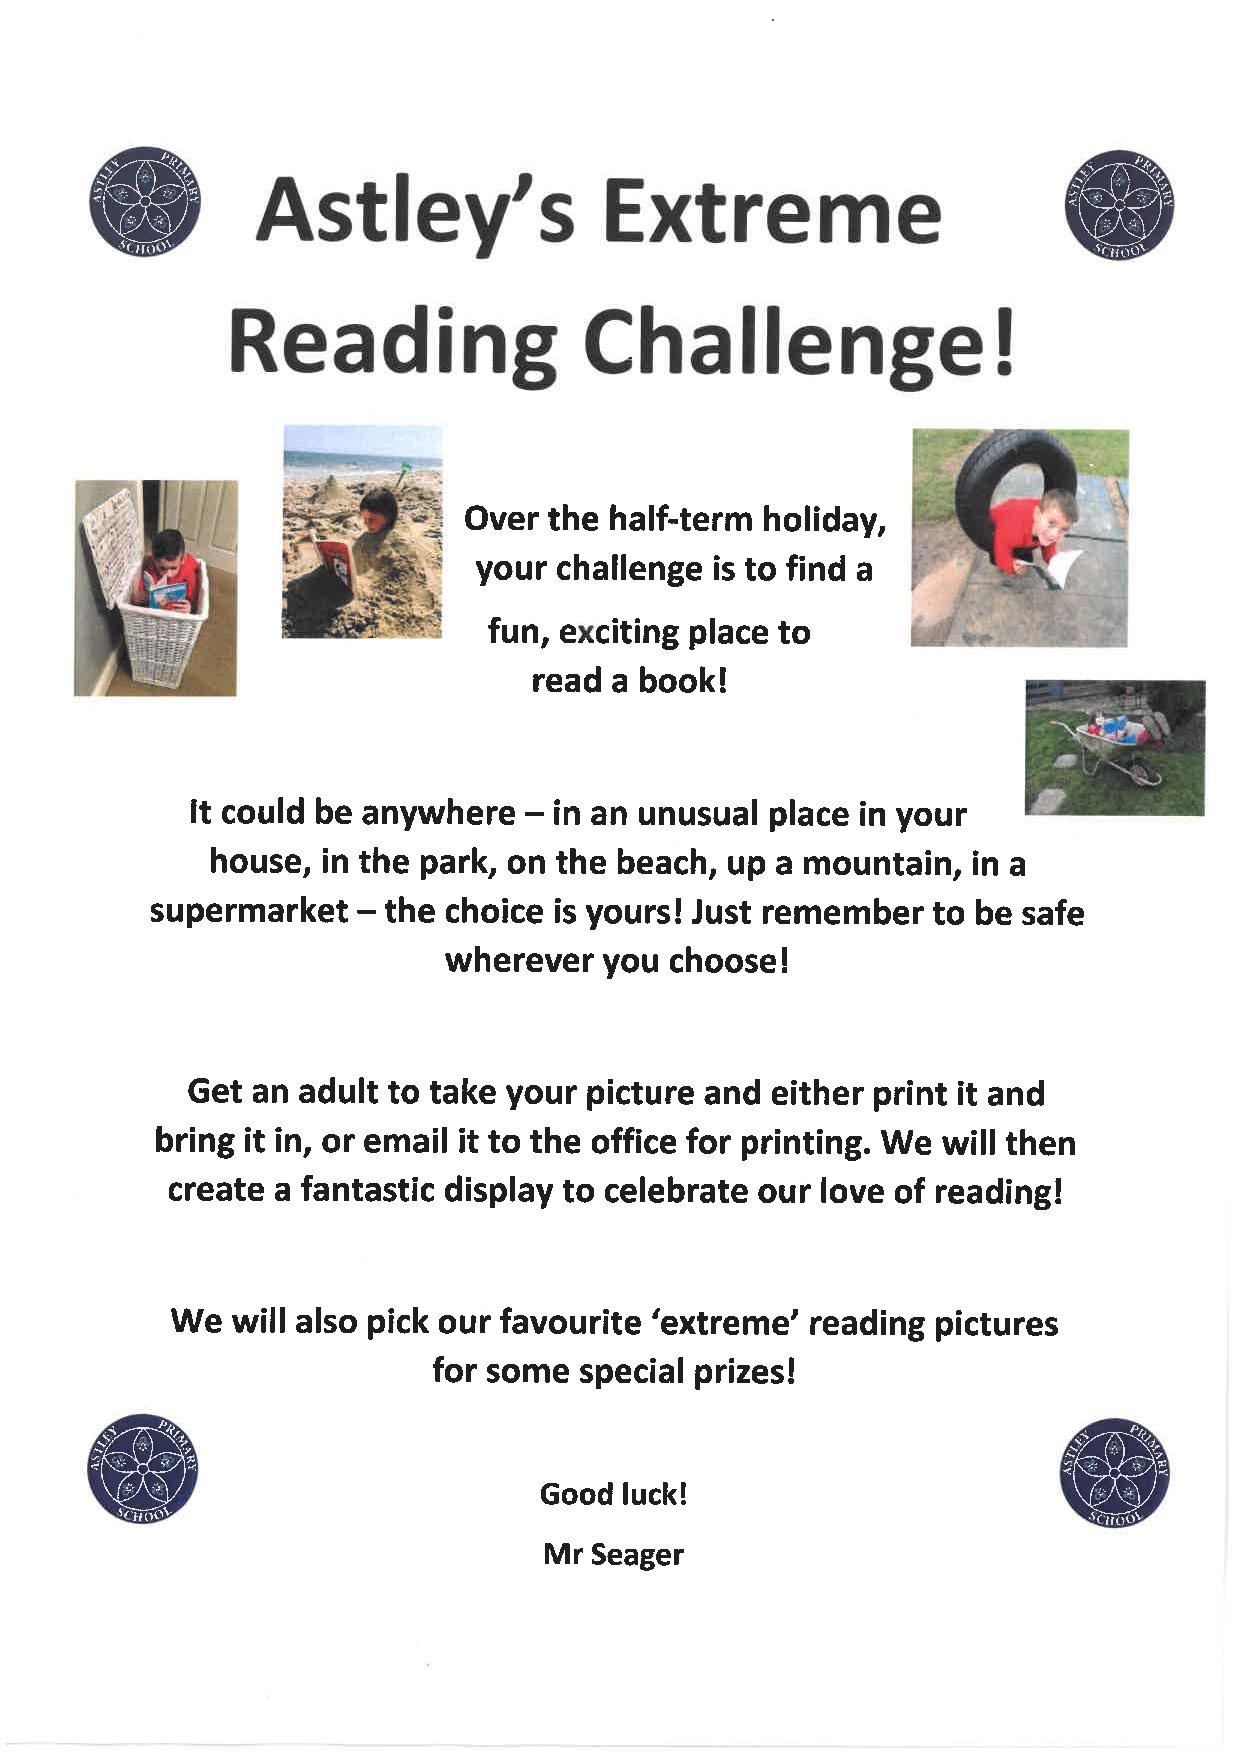 Astley's Extreme Reading Challenge!